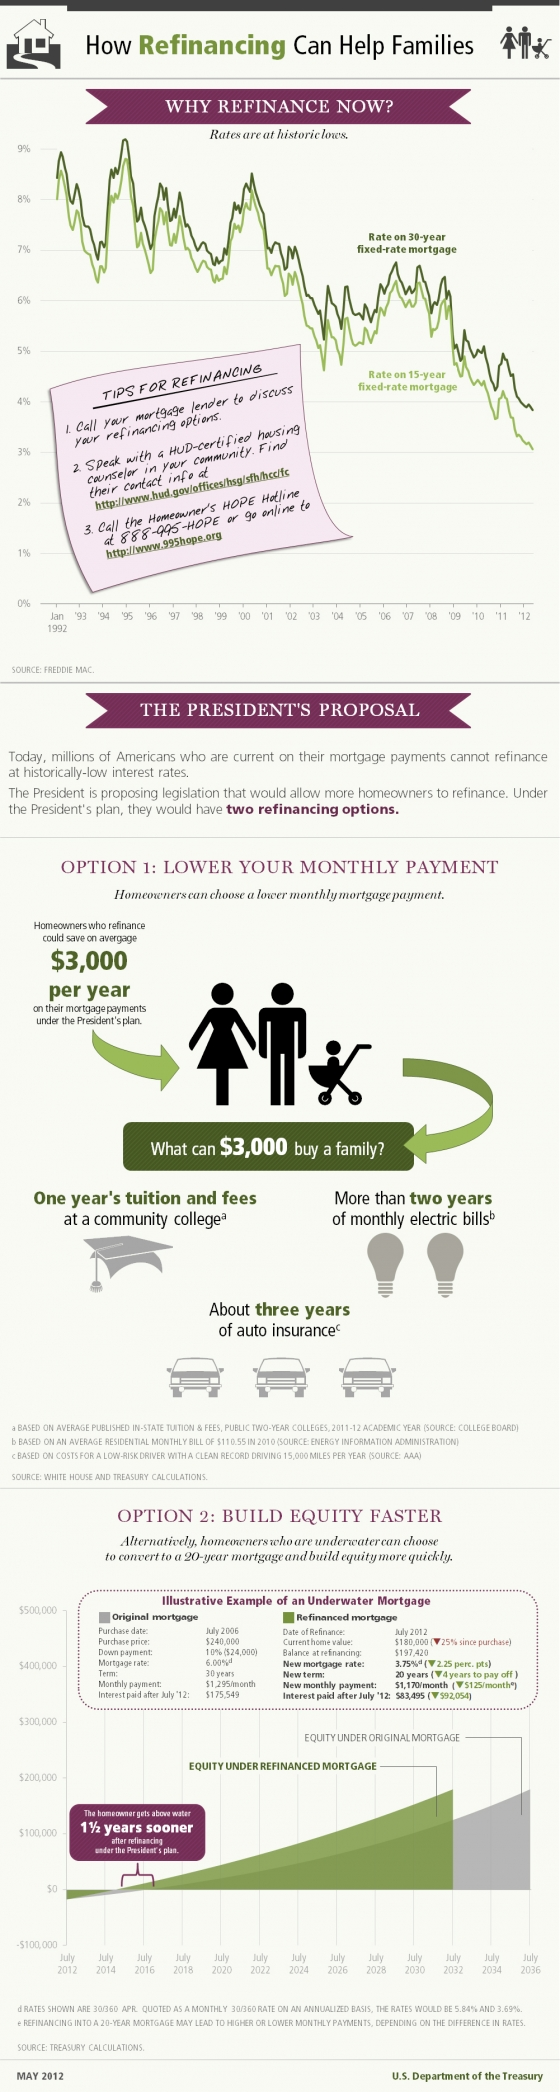 How Refinancing Can Help Families